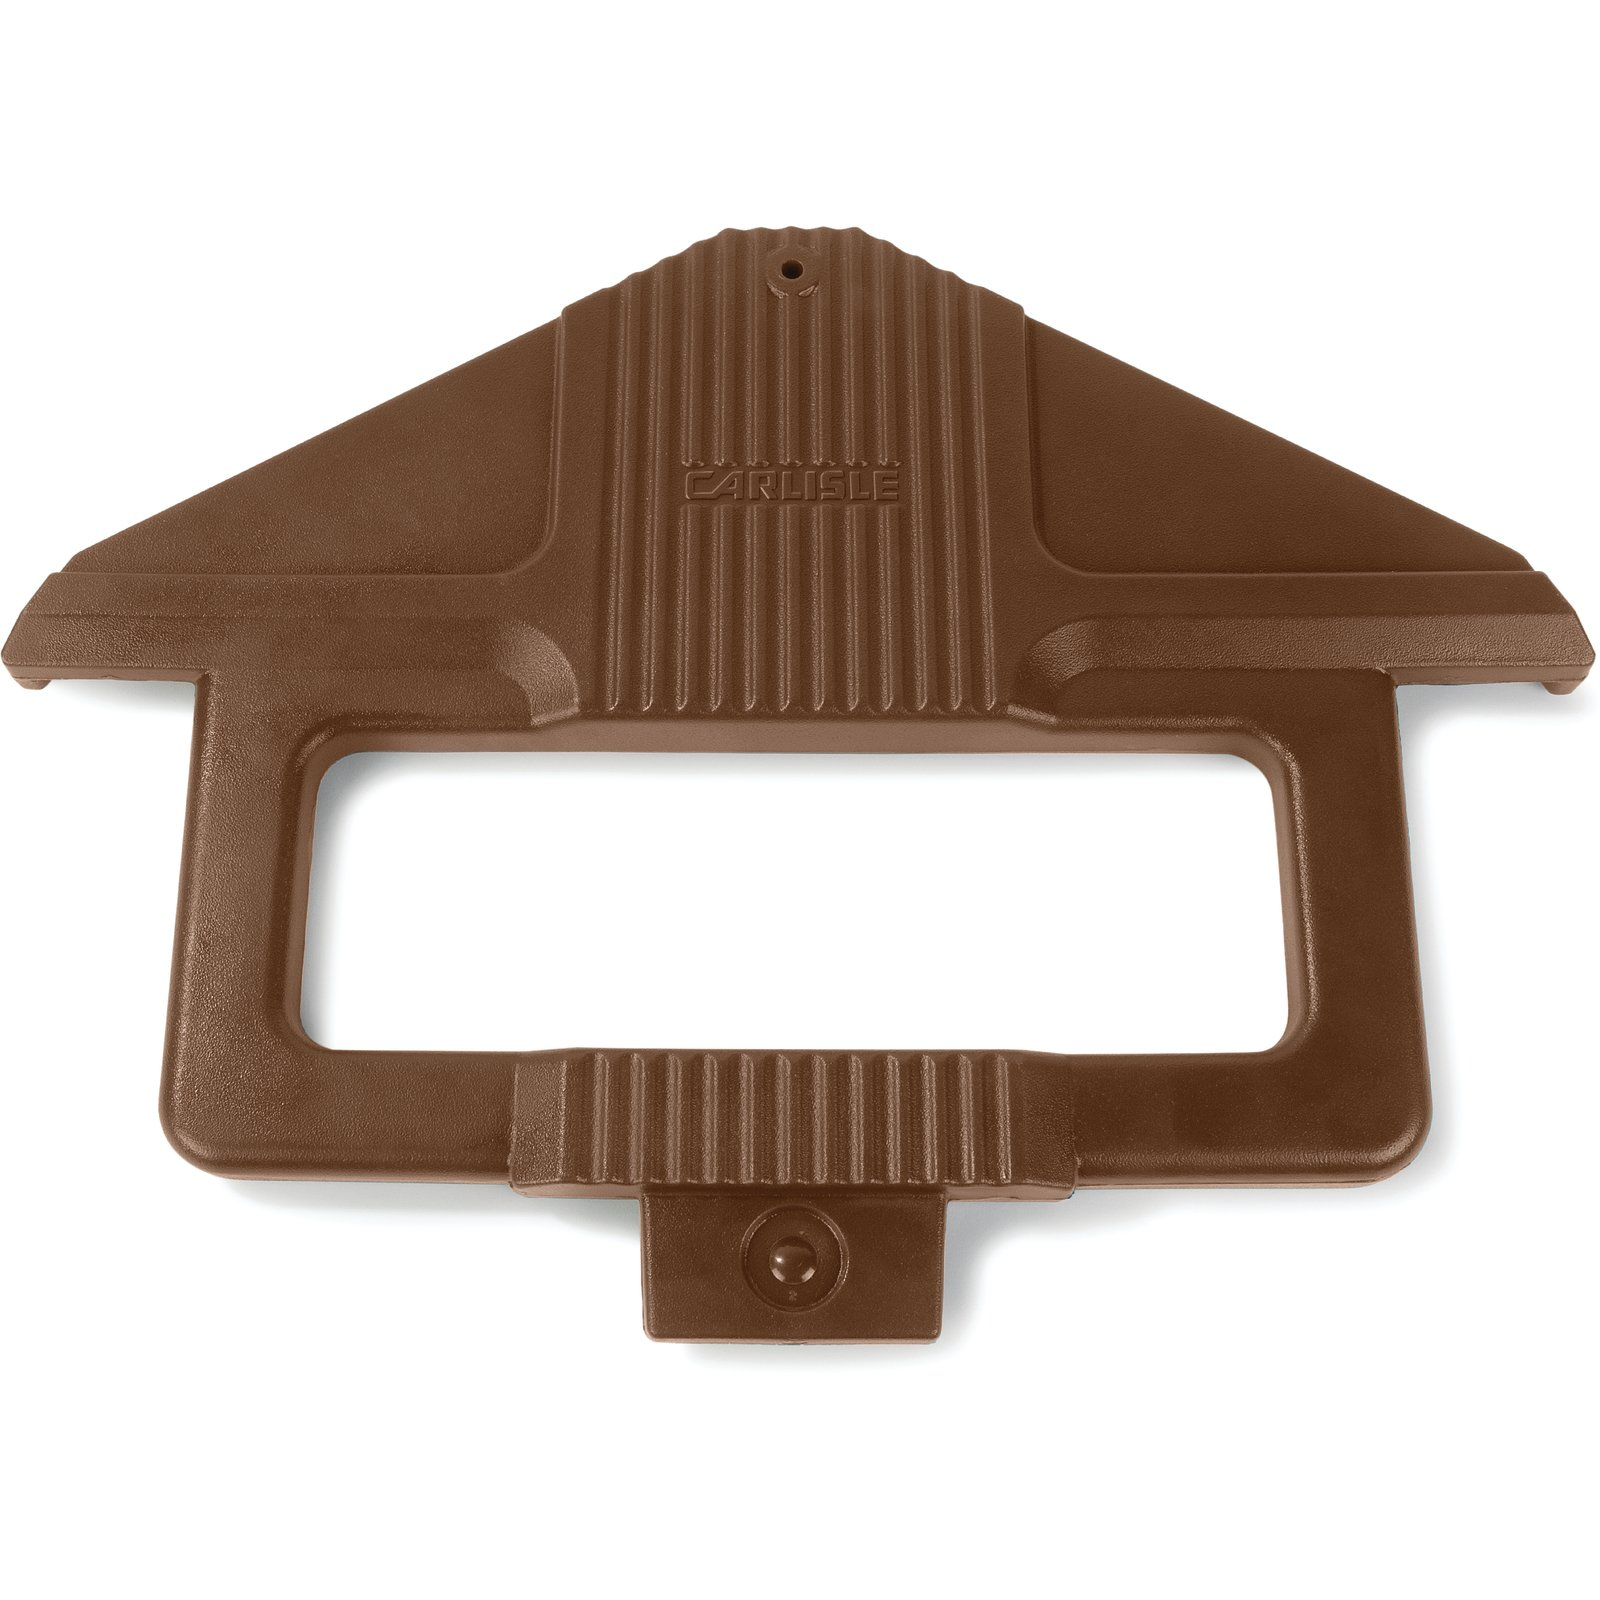 668401 - Six Star™ Sneeze Guard Post - Brown